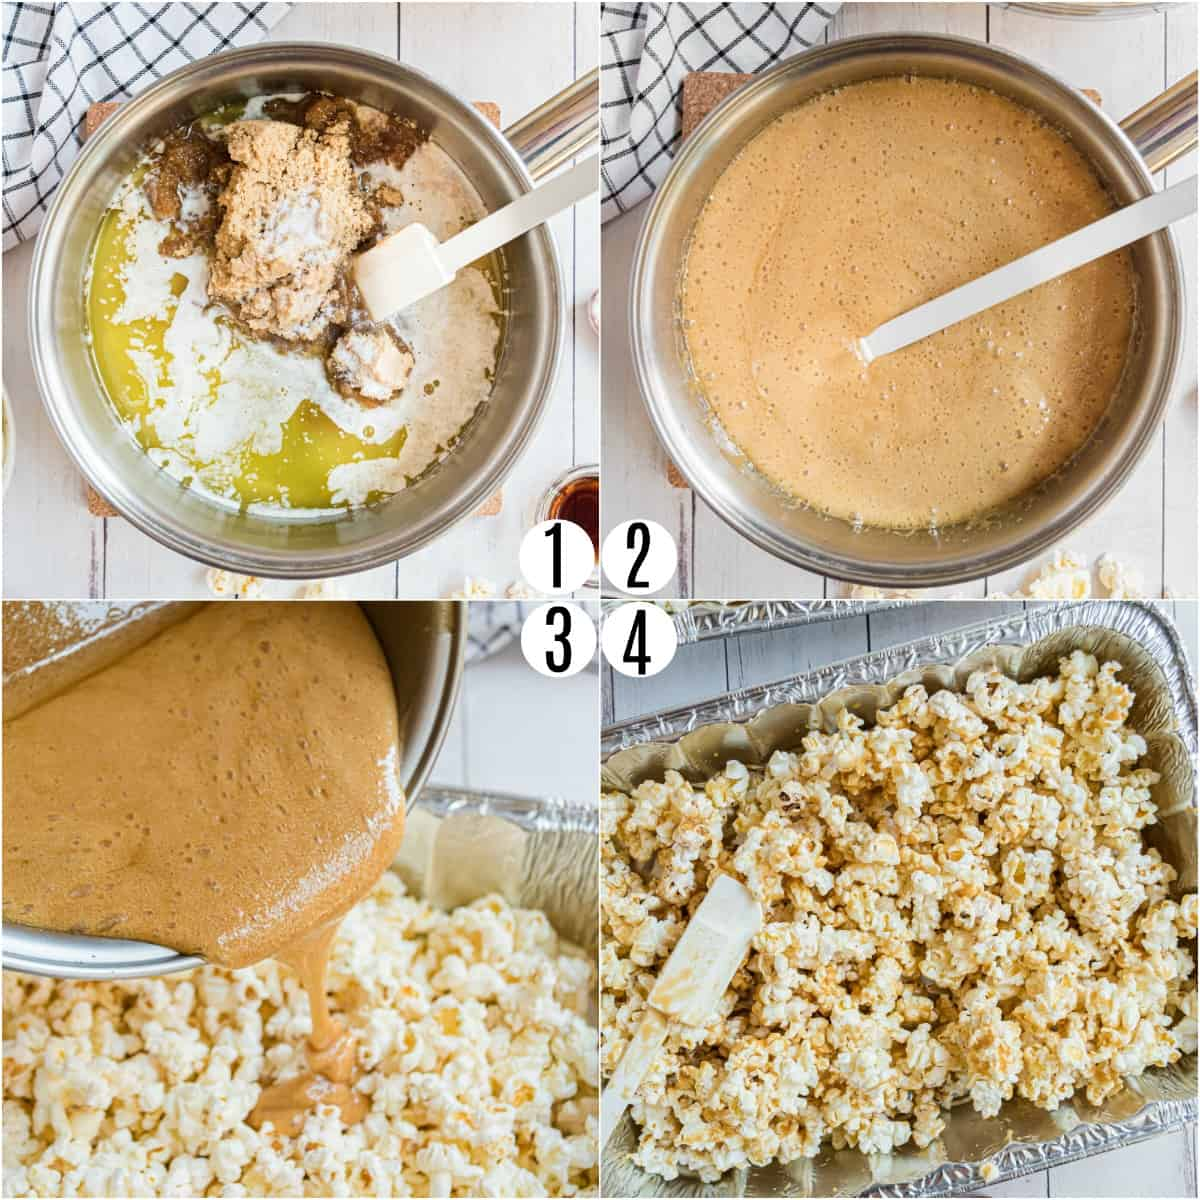 Step by step photos showing how to make caramel corn.